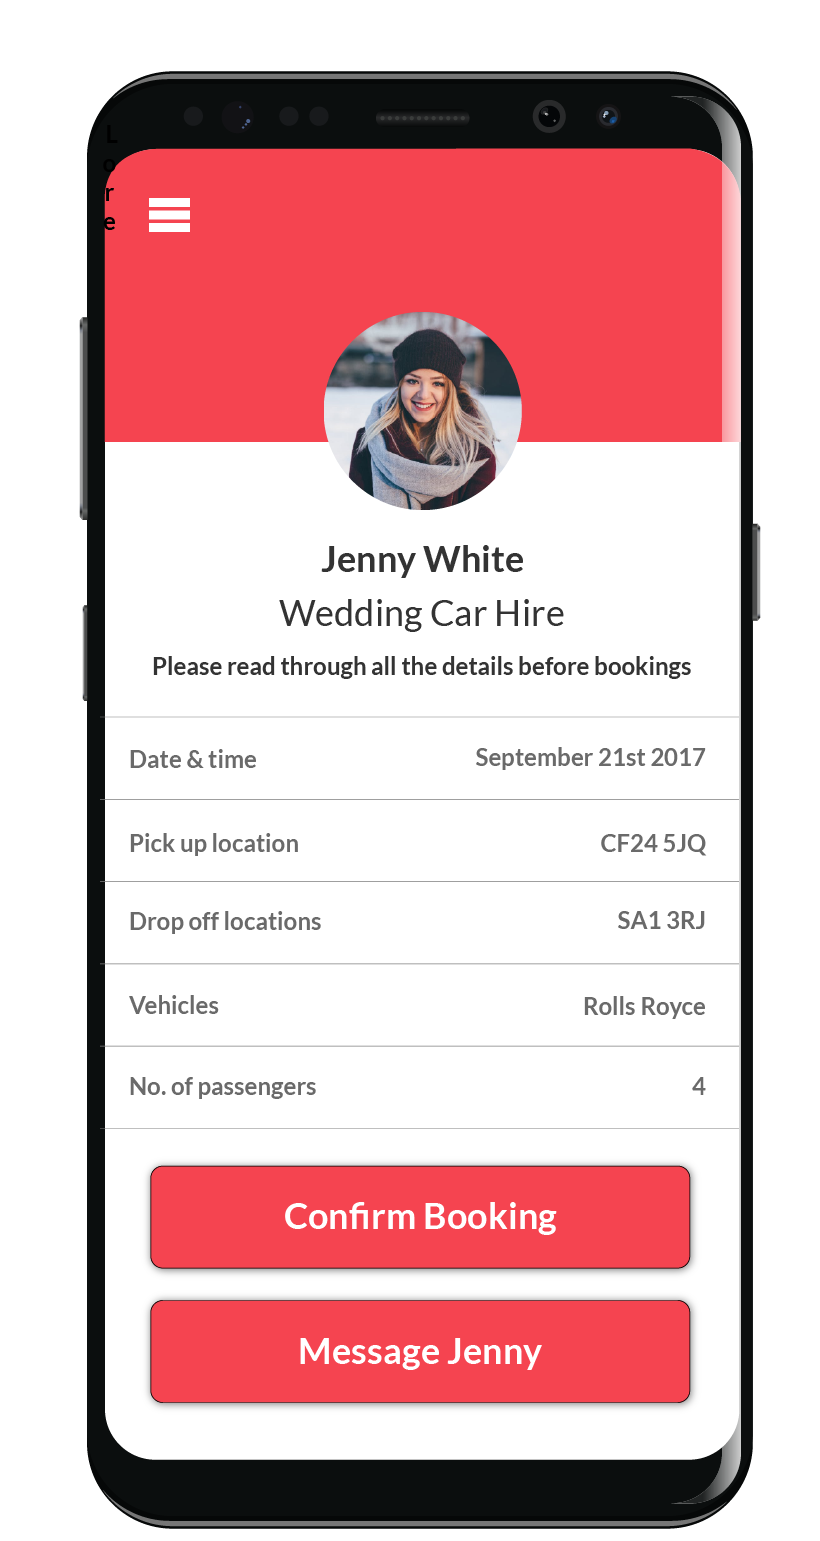 Anything for hire Android Mockup